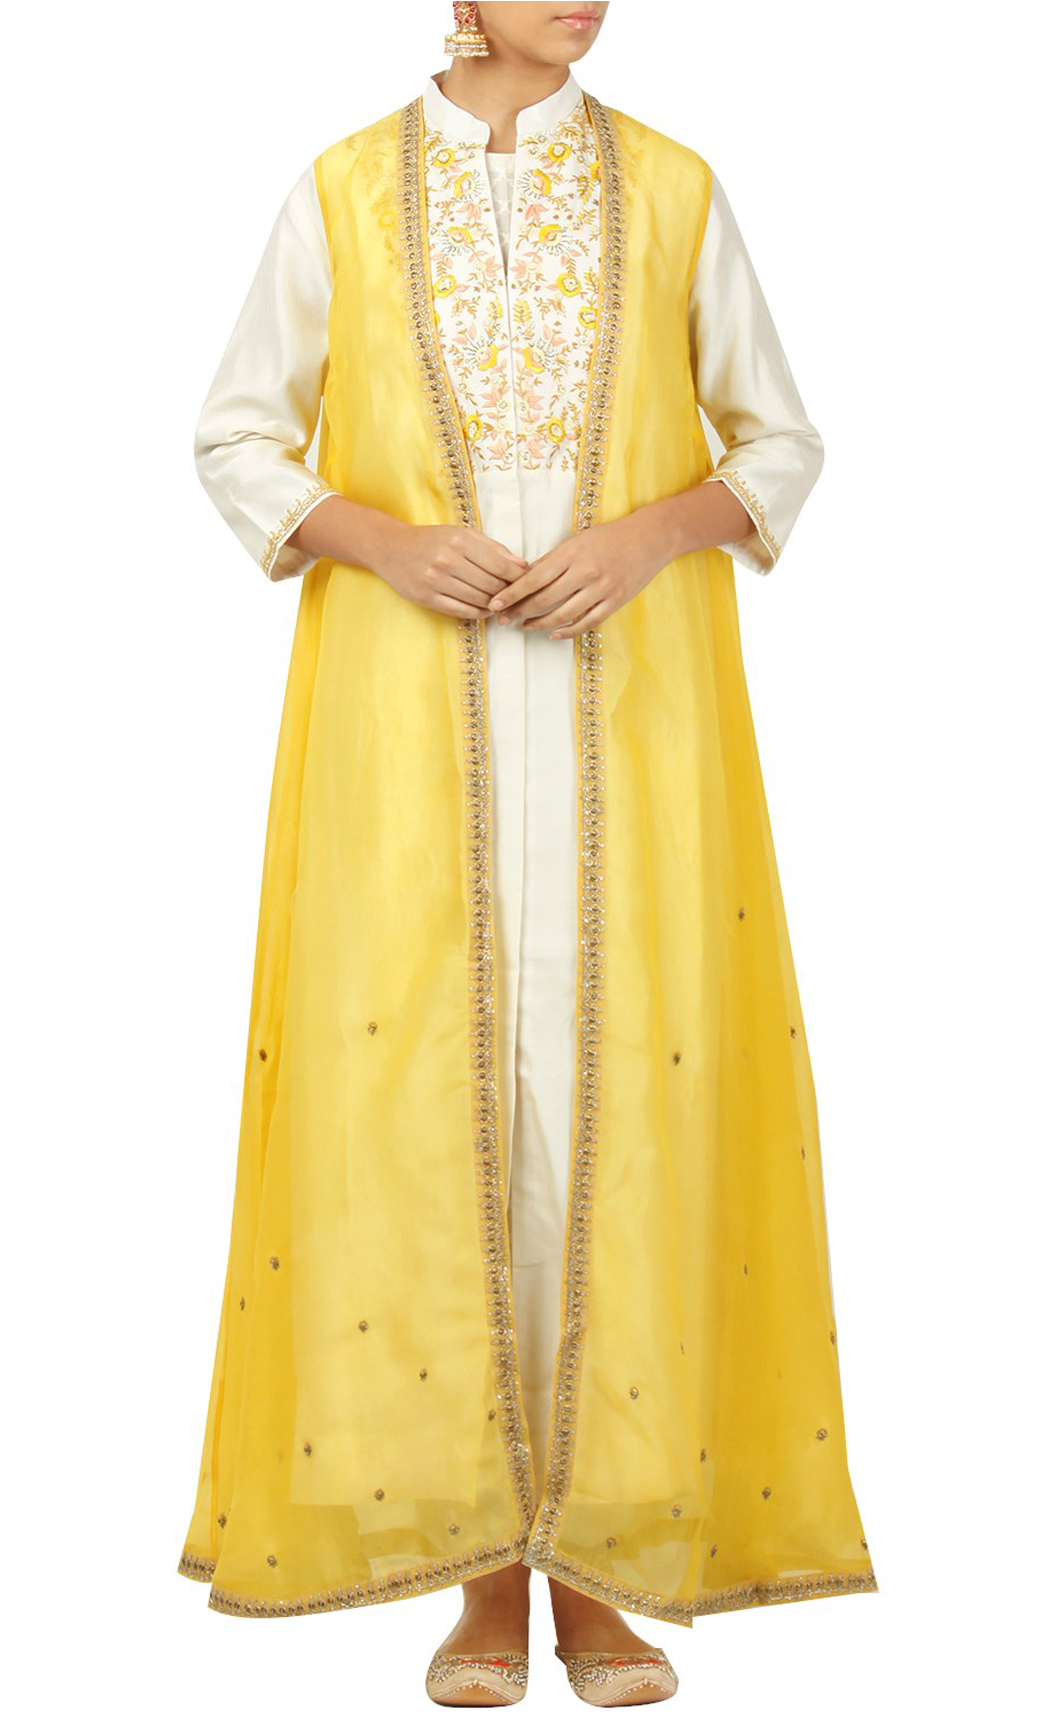 White Silk Kurta and Yellow Jacket with Straight Pants - Buy Online